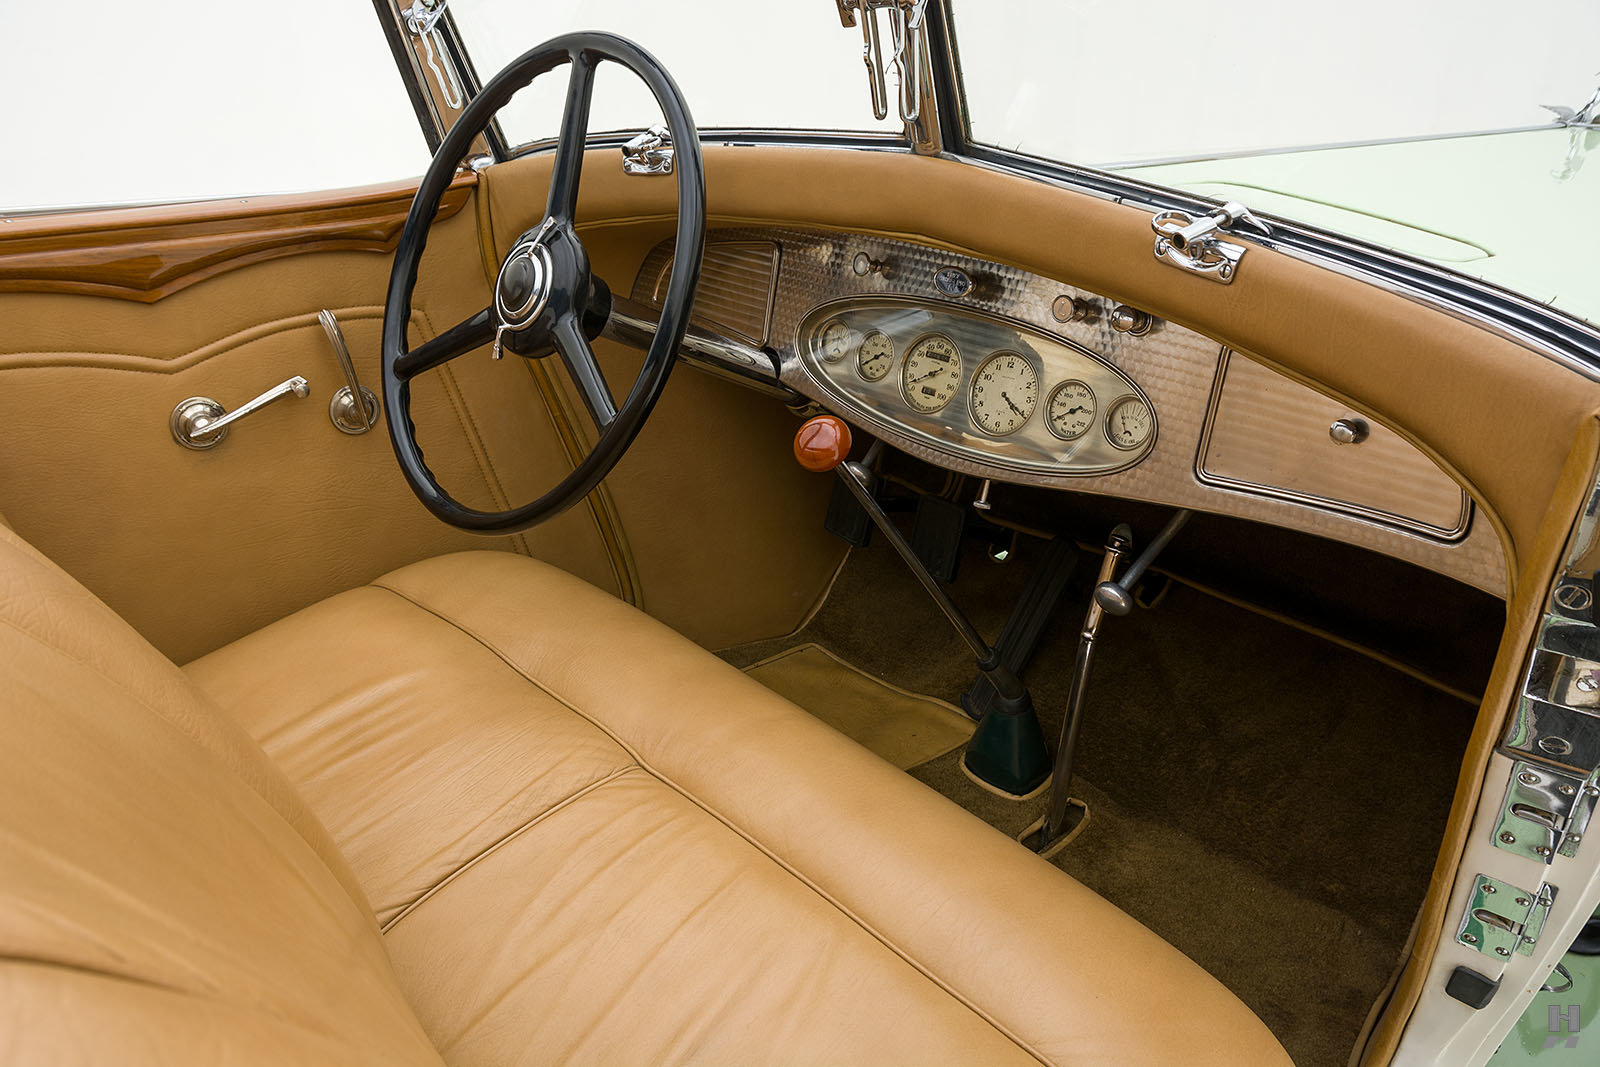 1932 Chrysler CL Imperial Convertible Sedan For Sale (picture 5 of 6)